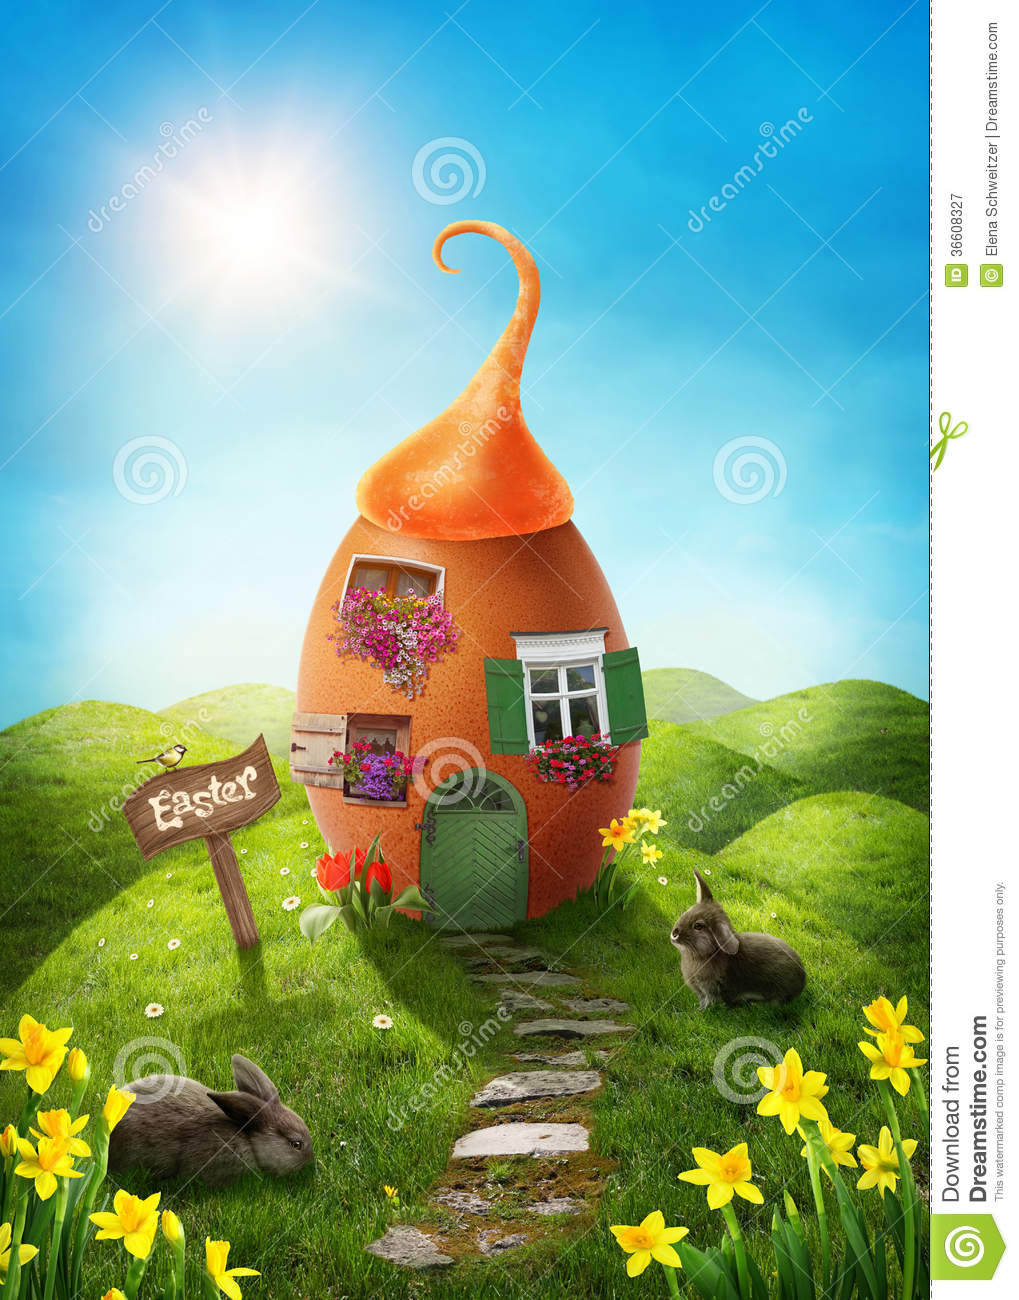 Spring easter meadow stock illustration Image of field  36608327